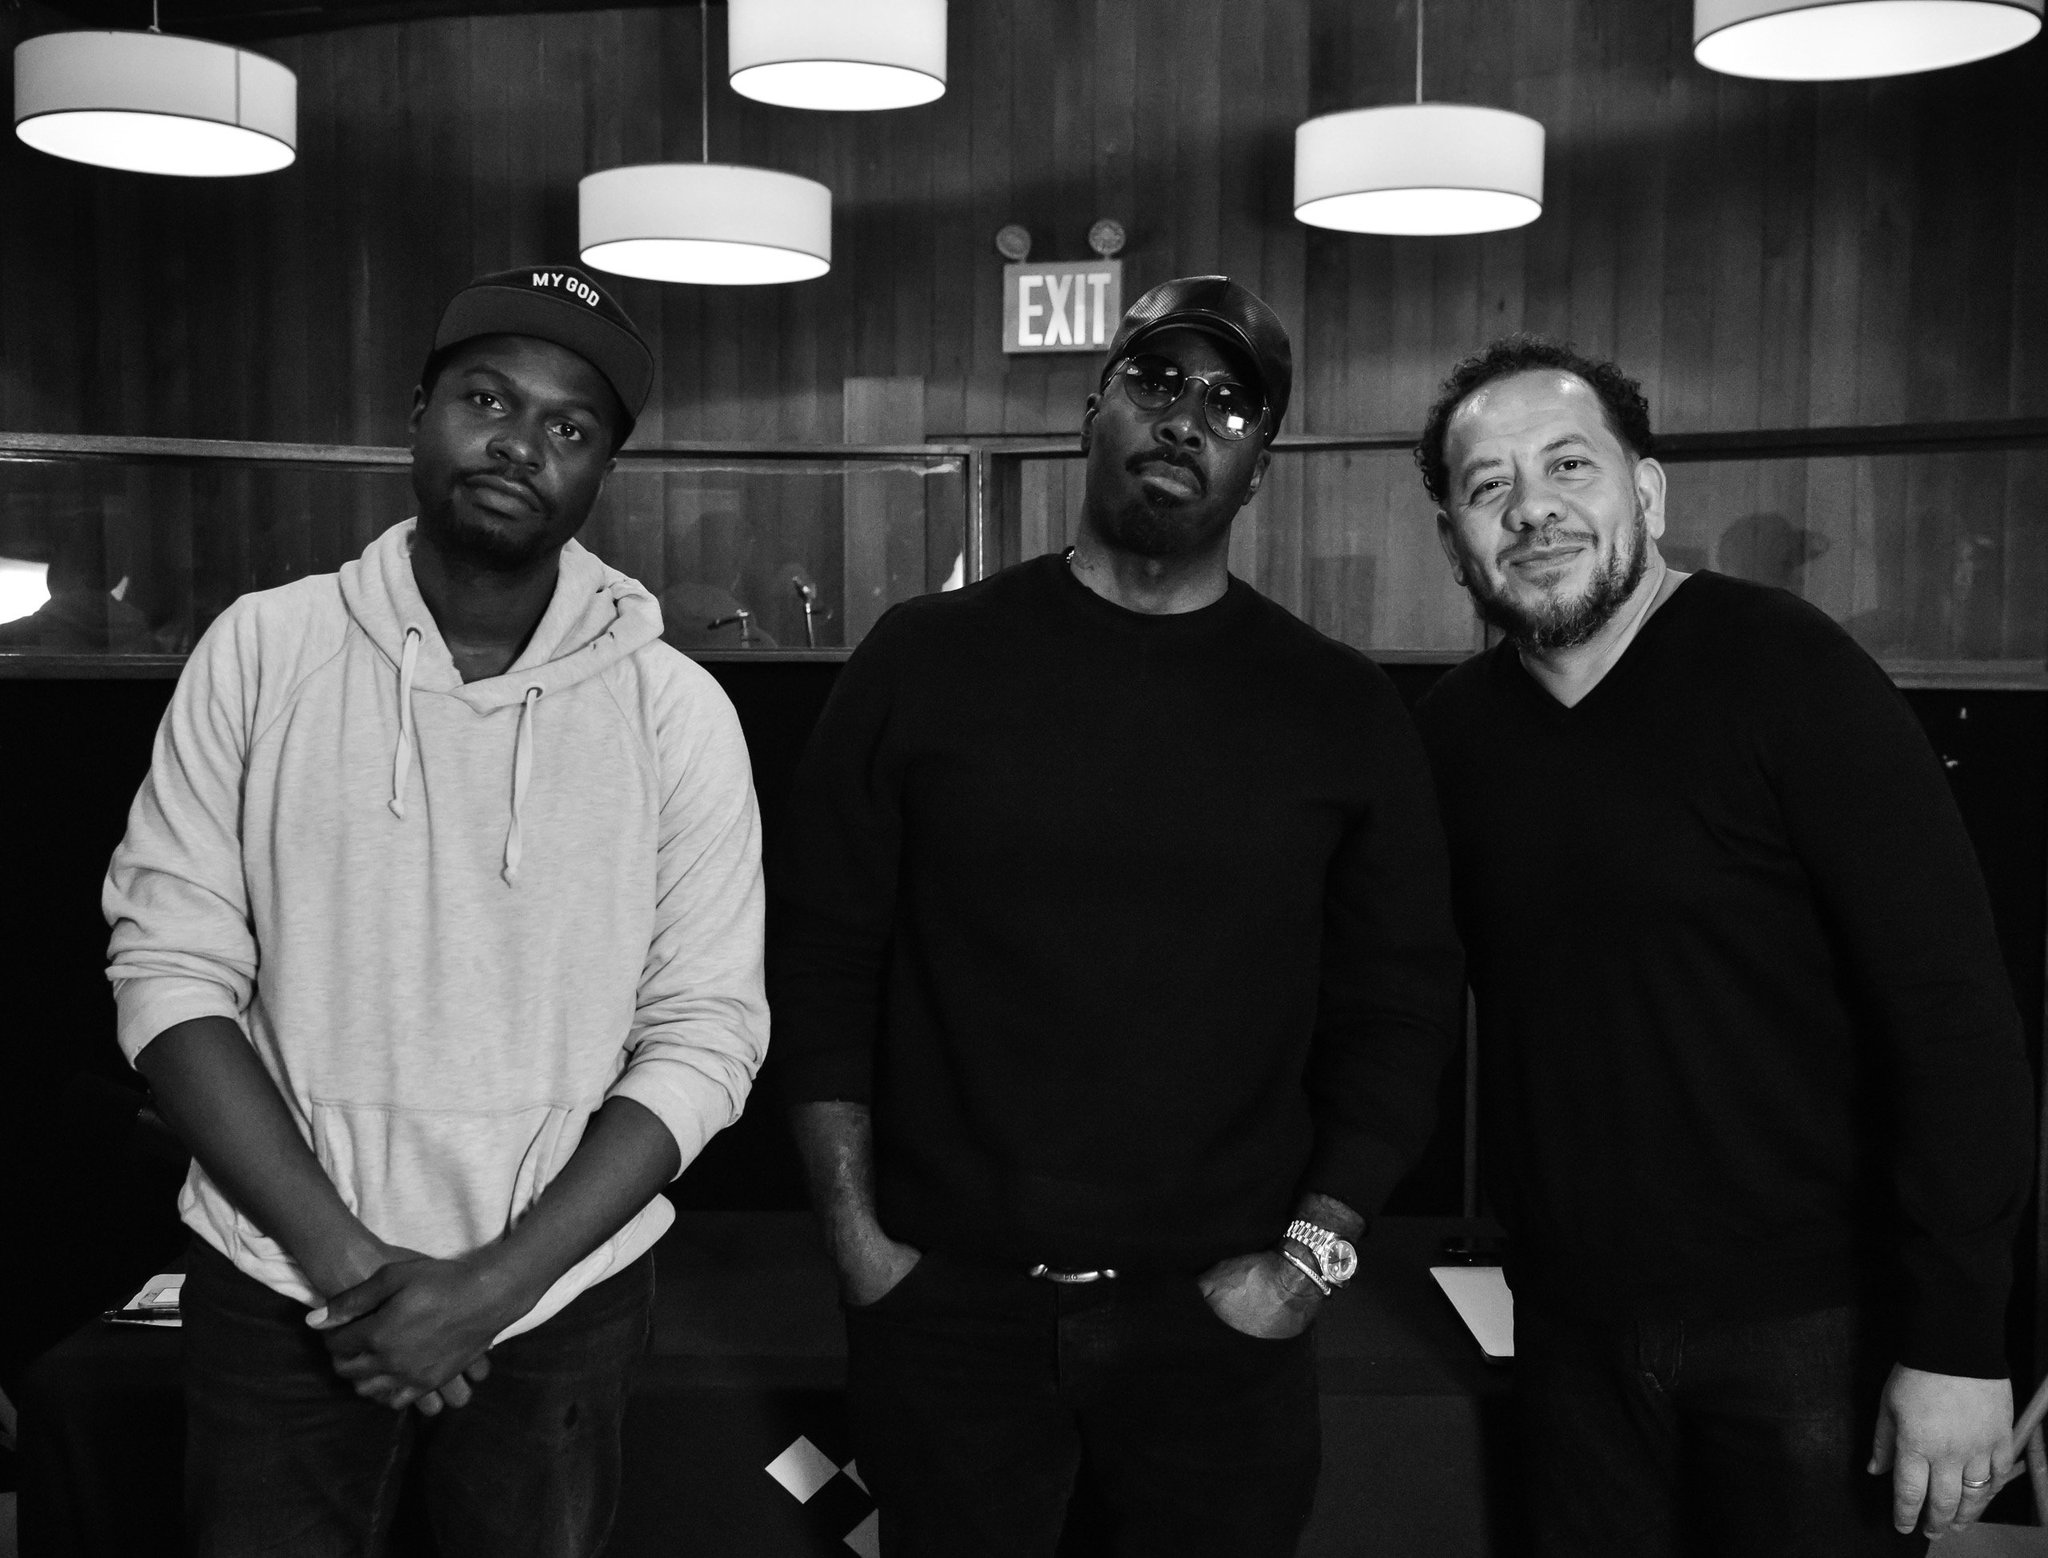 Coming soon! #RapRadarPodcast Mark Pitts @iammarkpitts #TIDAL �� @Calligrafist https://t.co/kqv0SMYOZH